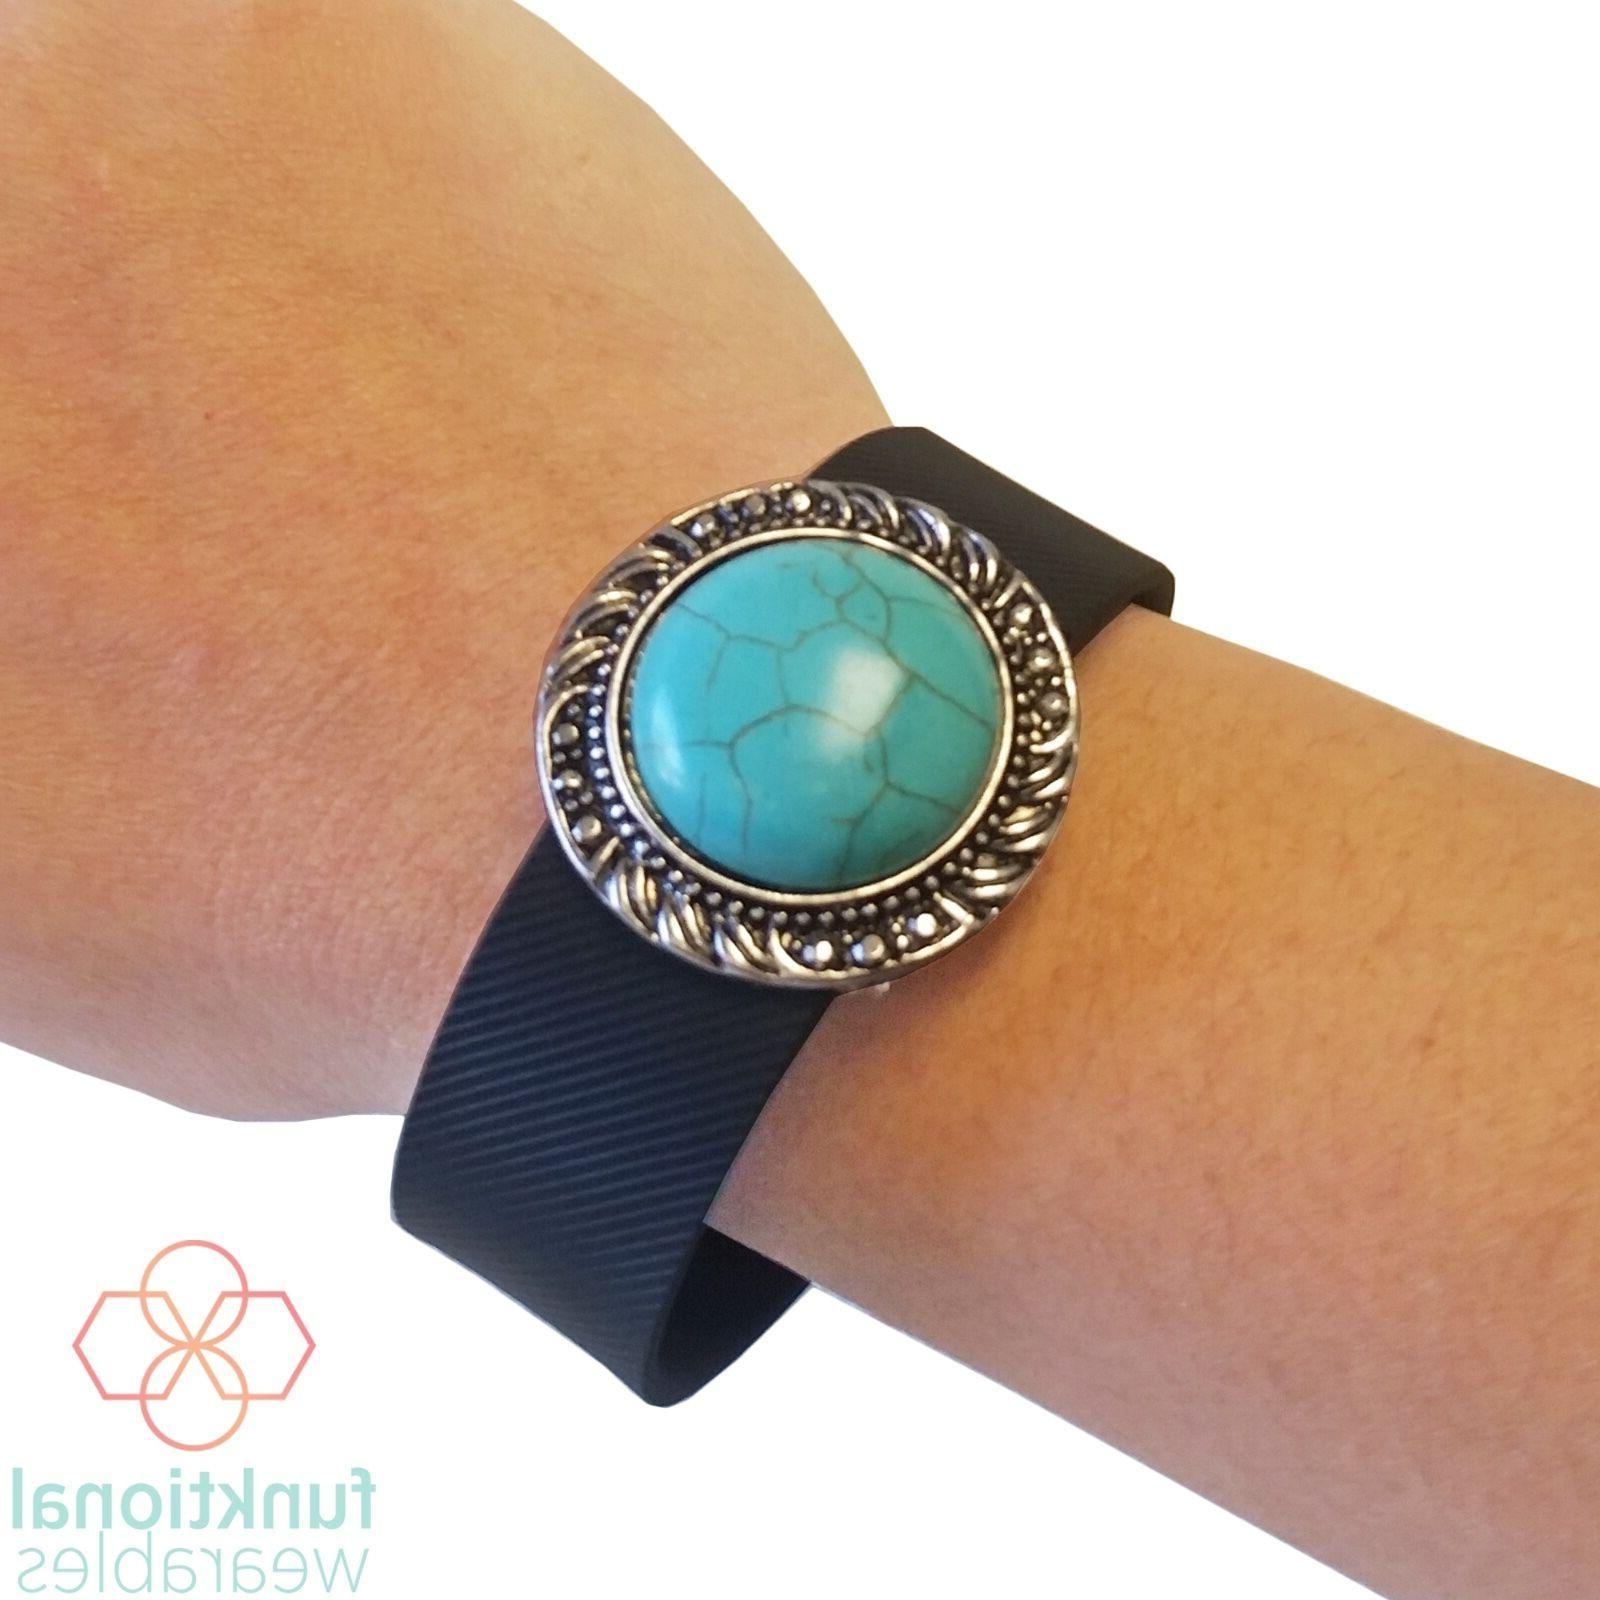 turquoise charm to accessorize fitbit flex charge